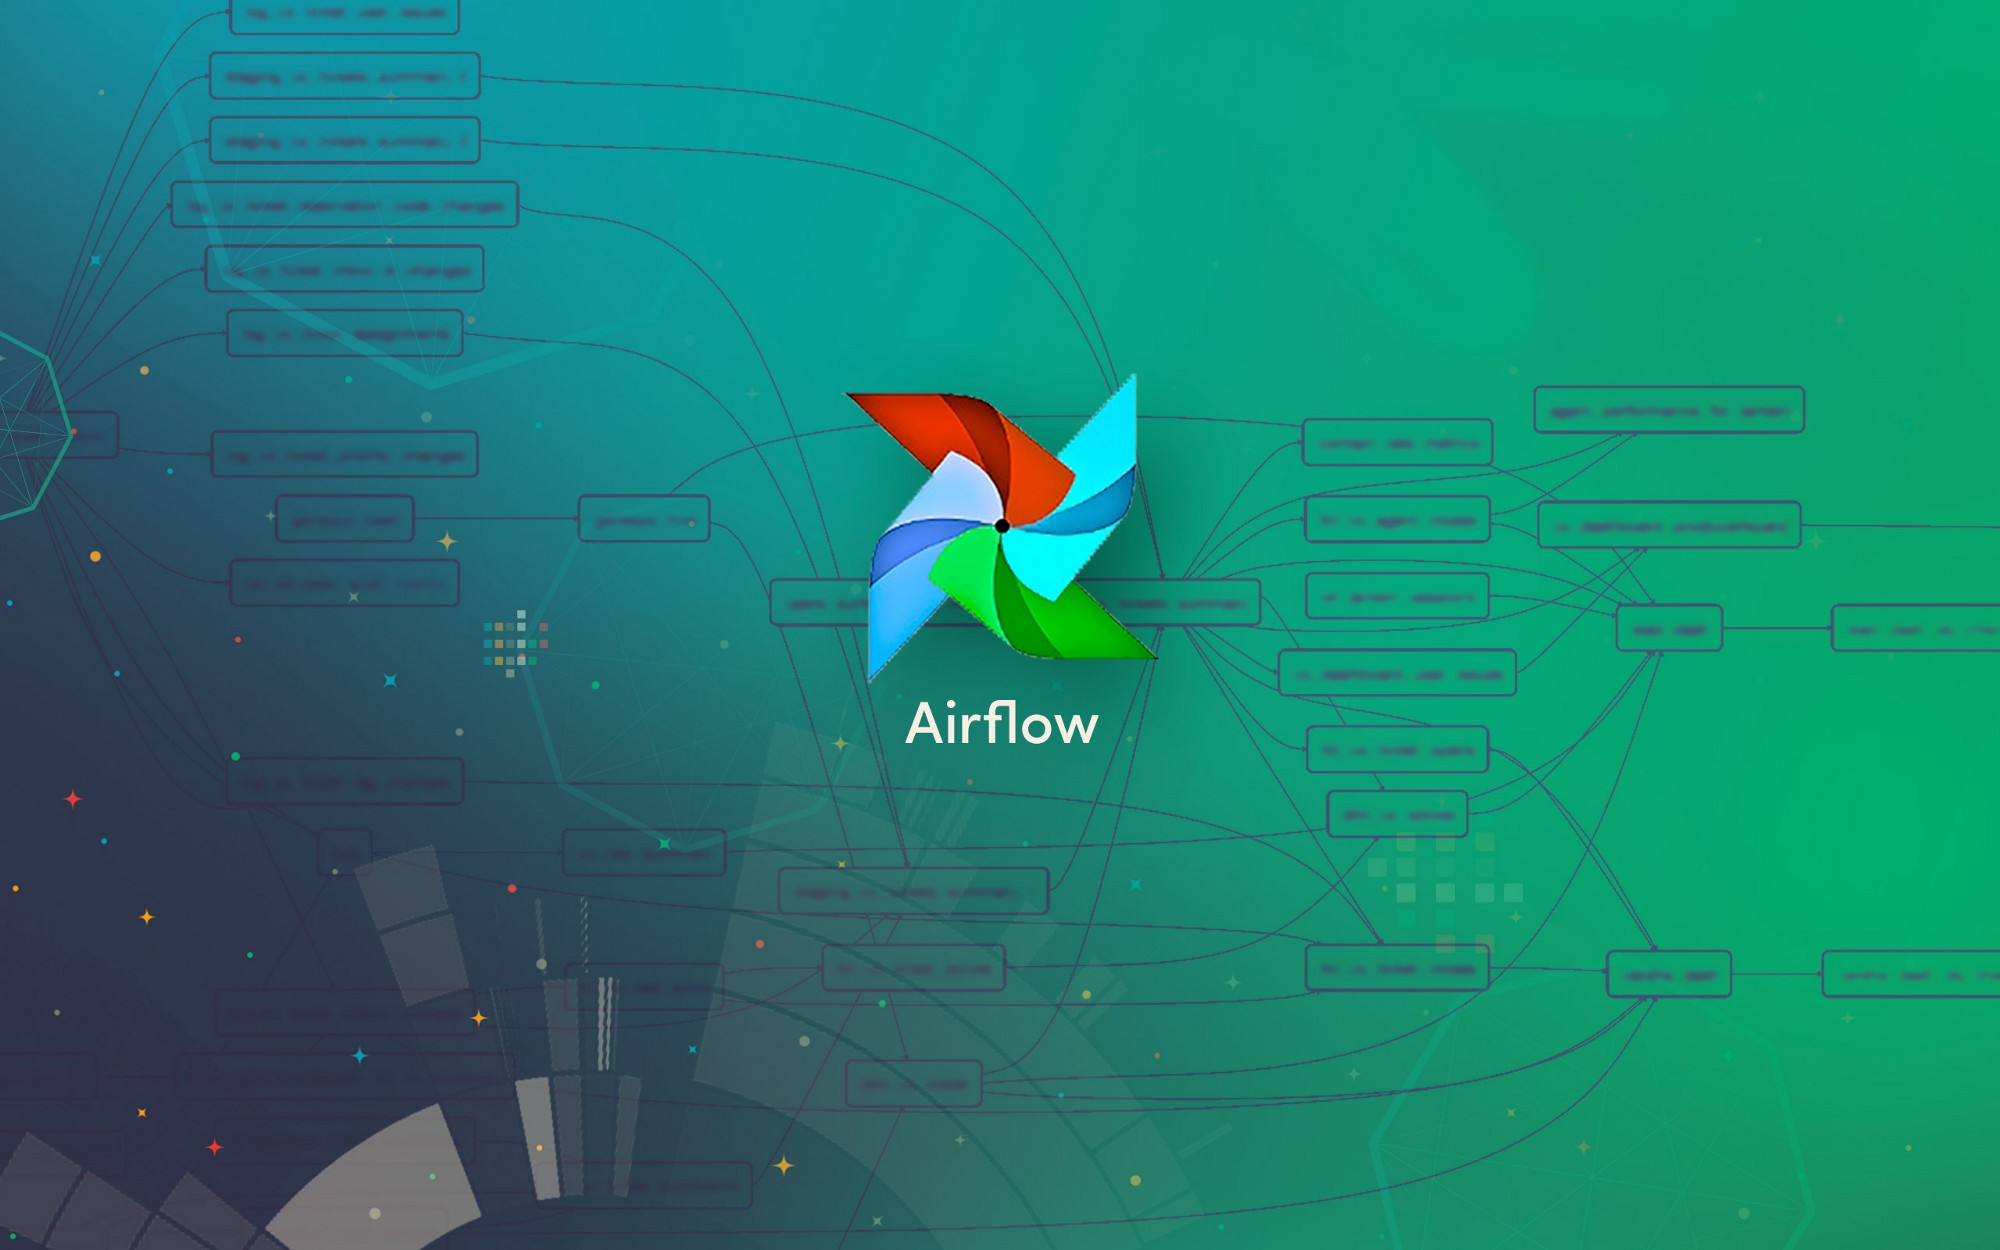 tool] It's time to upgrade your scheduler to Airflow